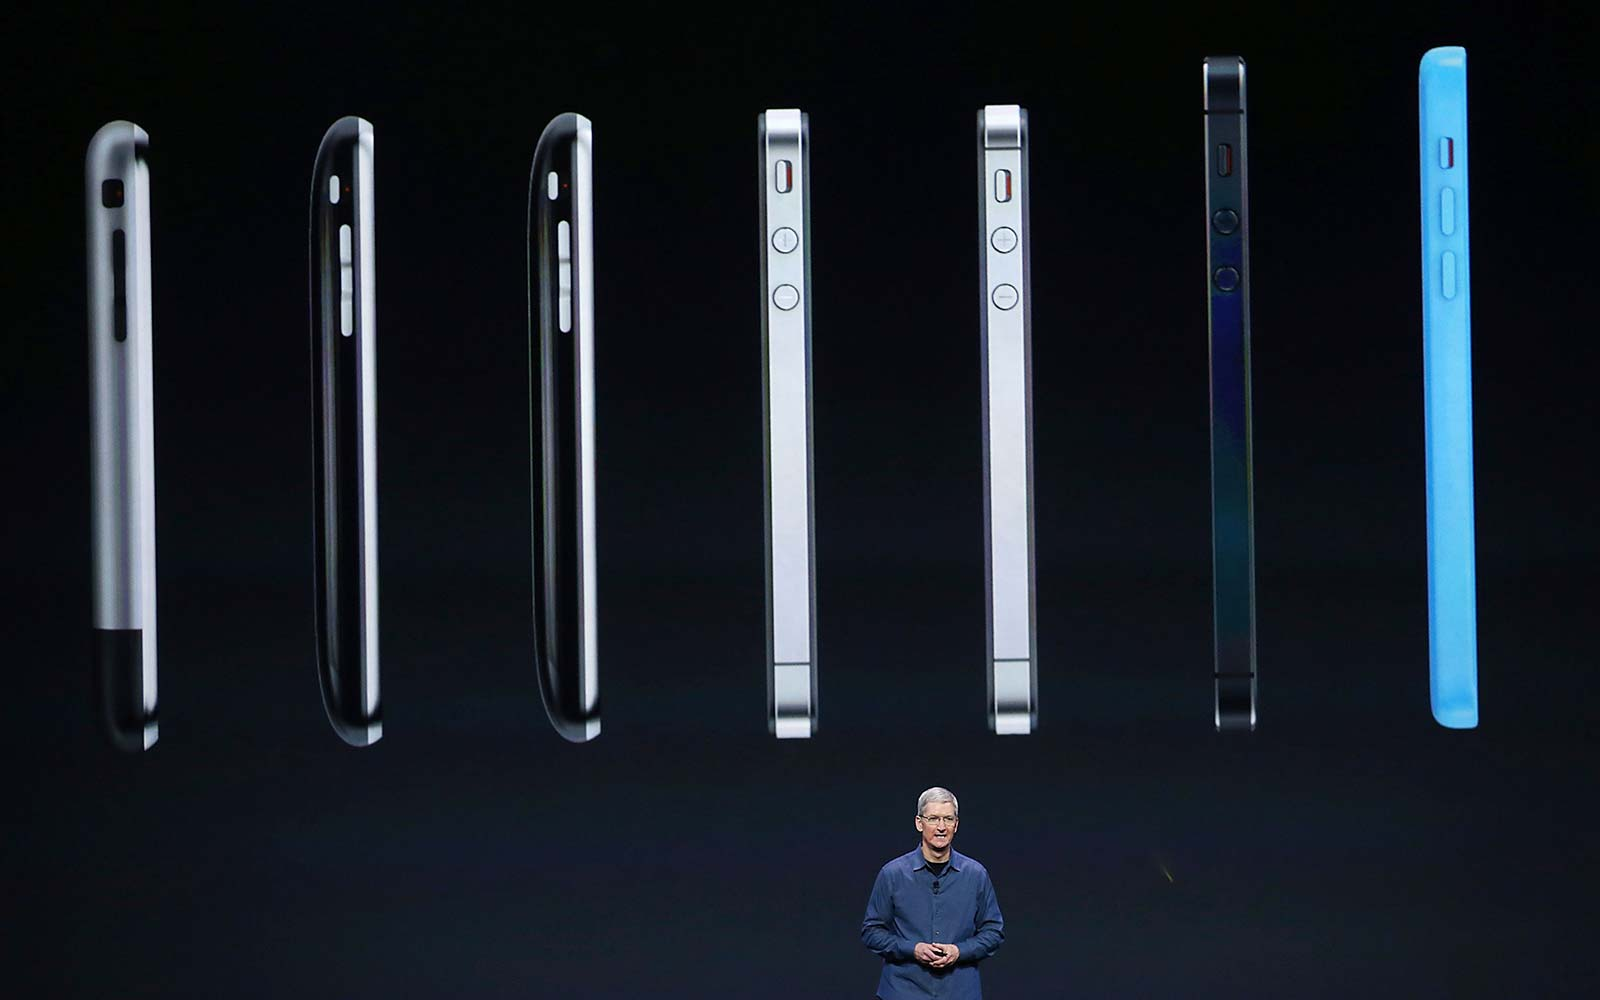 Apple Keynote Event: How to Watch the New iPhone Reveal